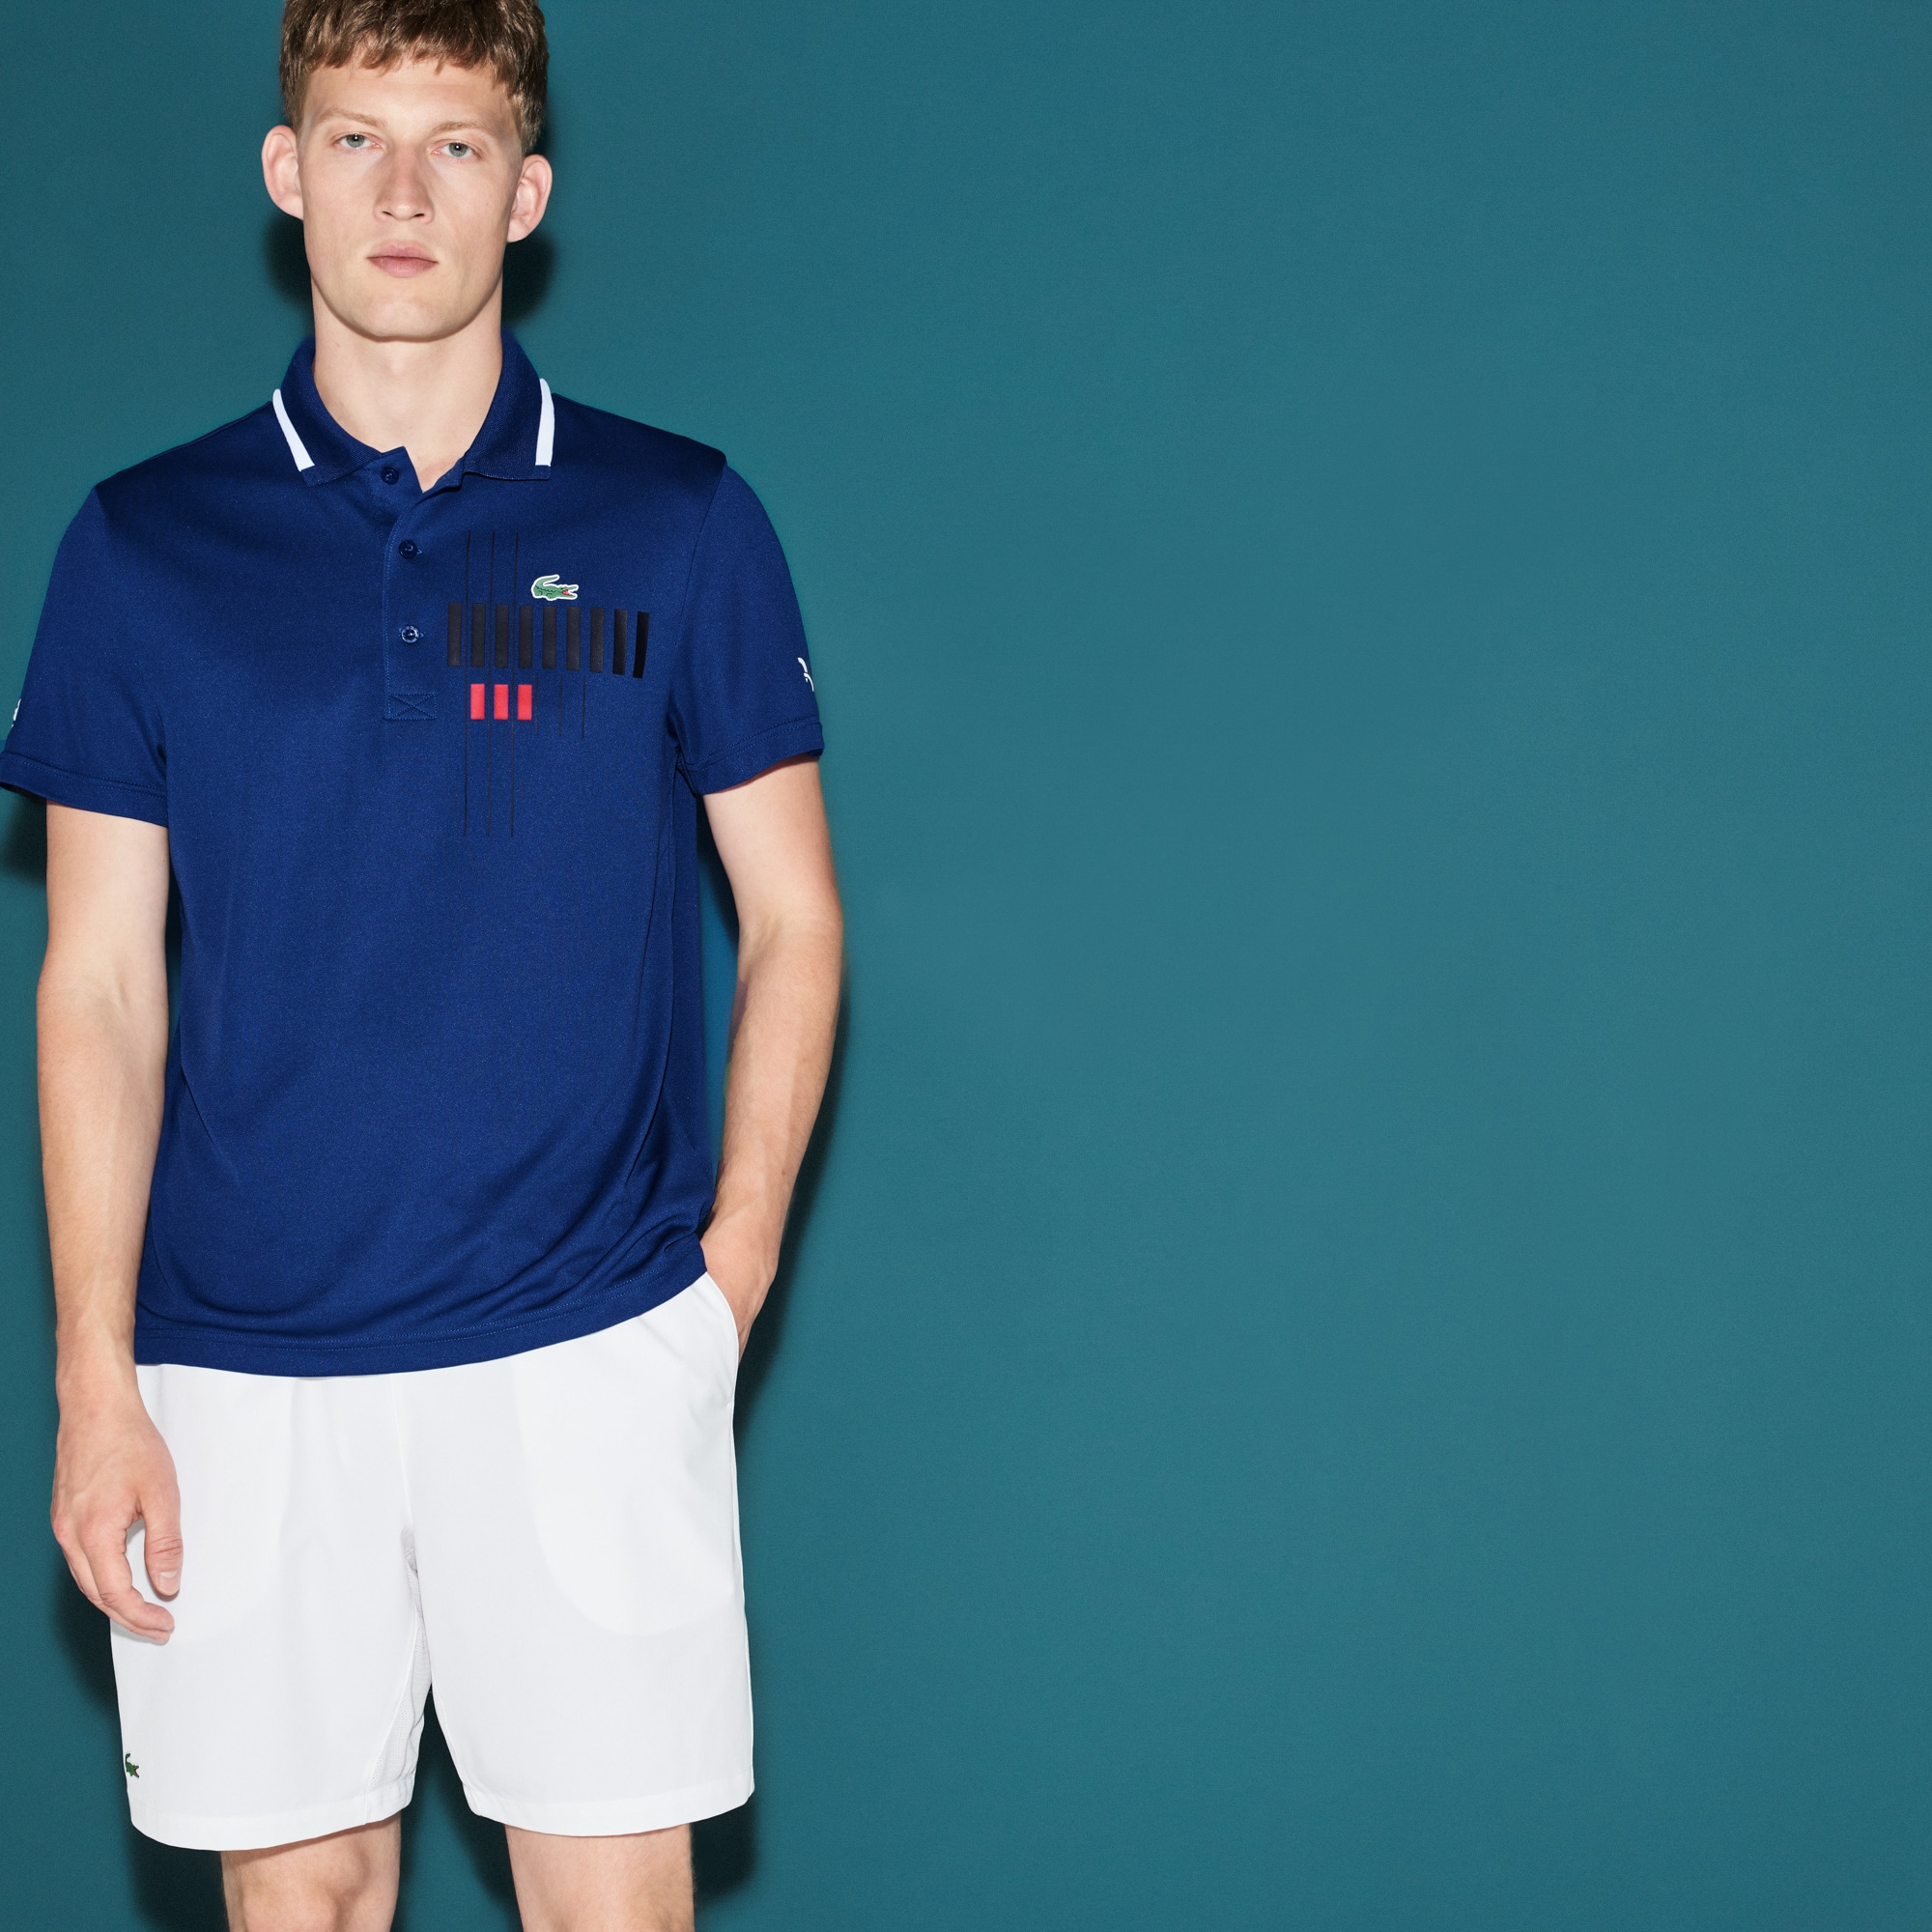 Lacoste polo Kollektion für Novak Djokovic - Exclusive Blue Edition